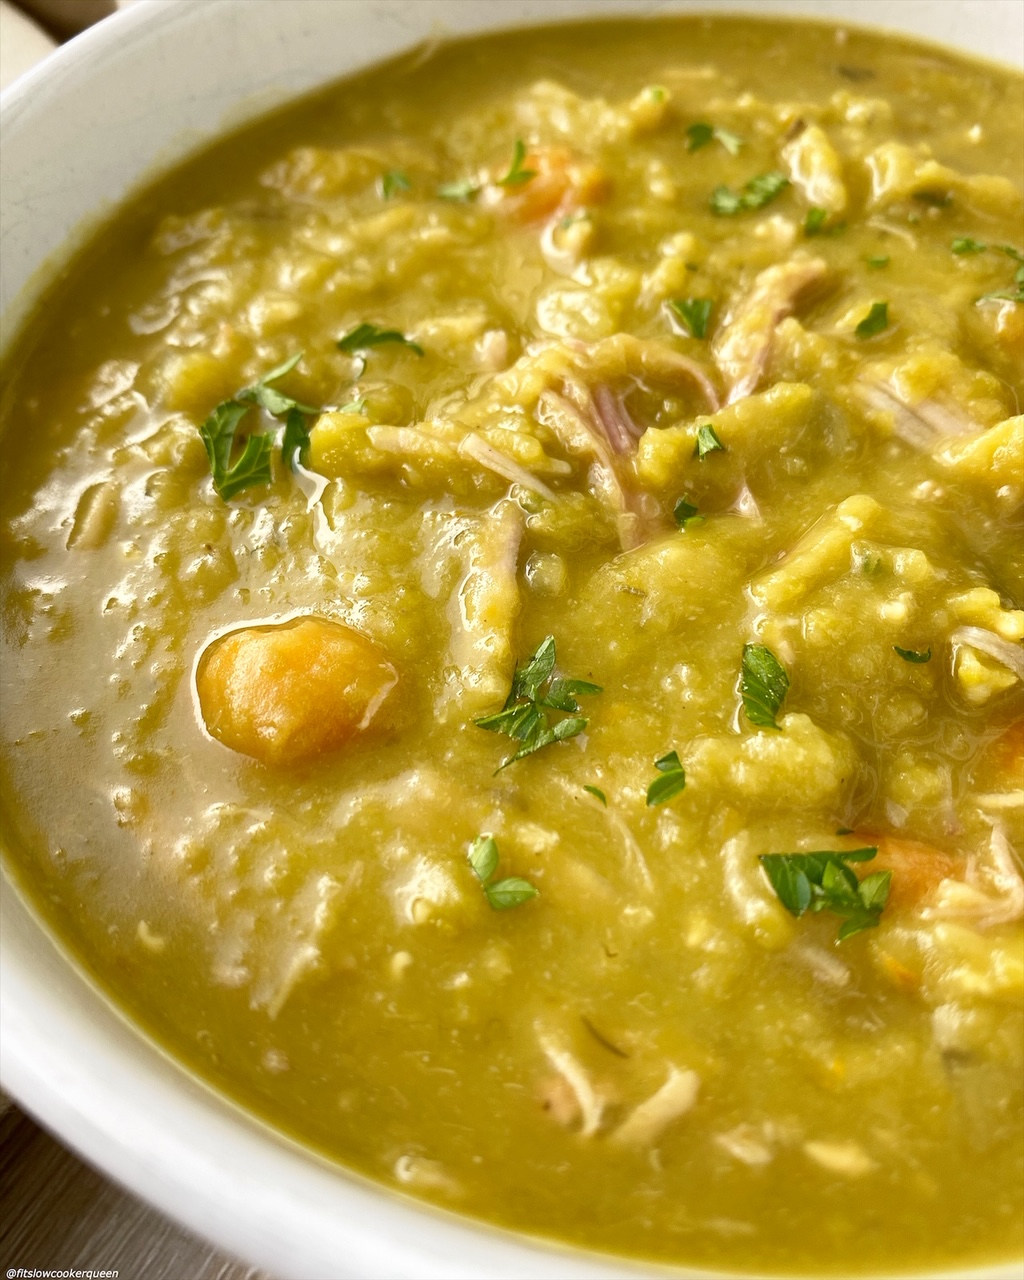 close up, side view of split pea soup in a bowl